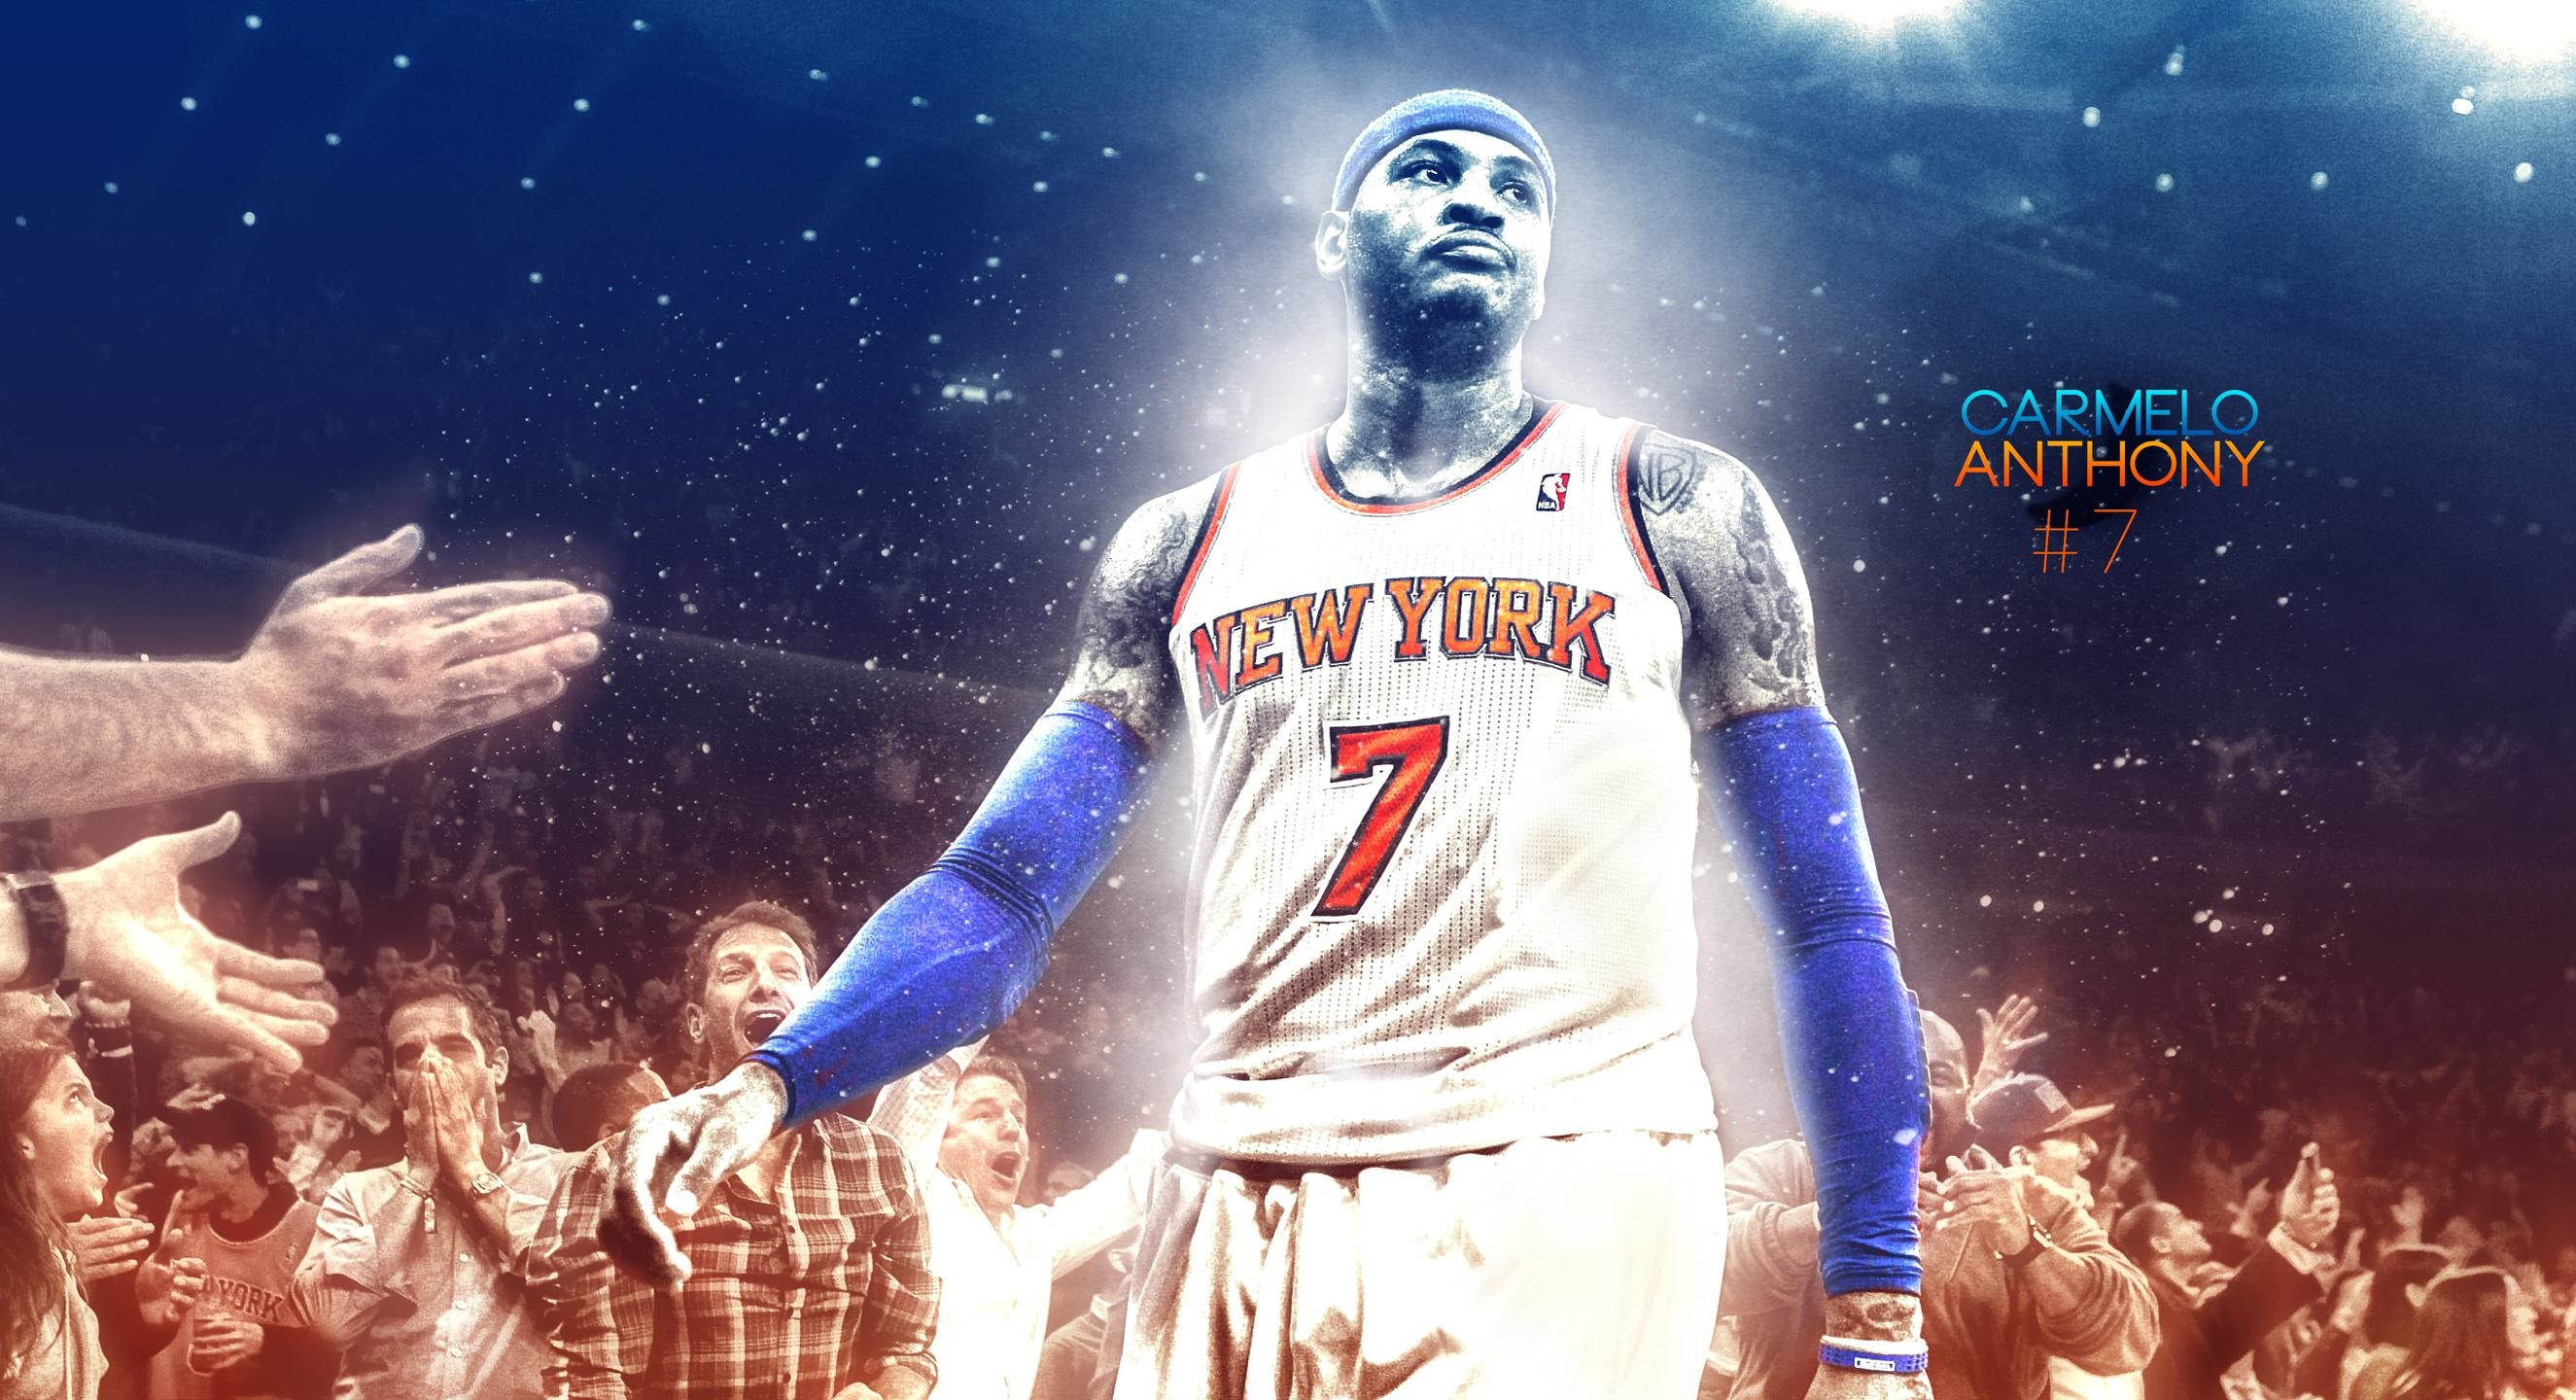 2650x1440 carmelo anthony wallpaper #434781